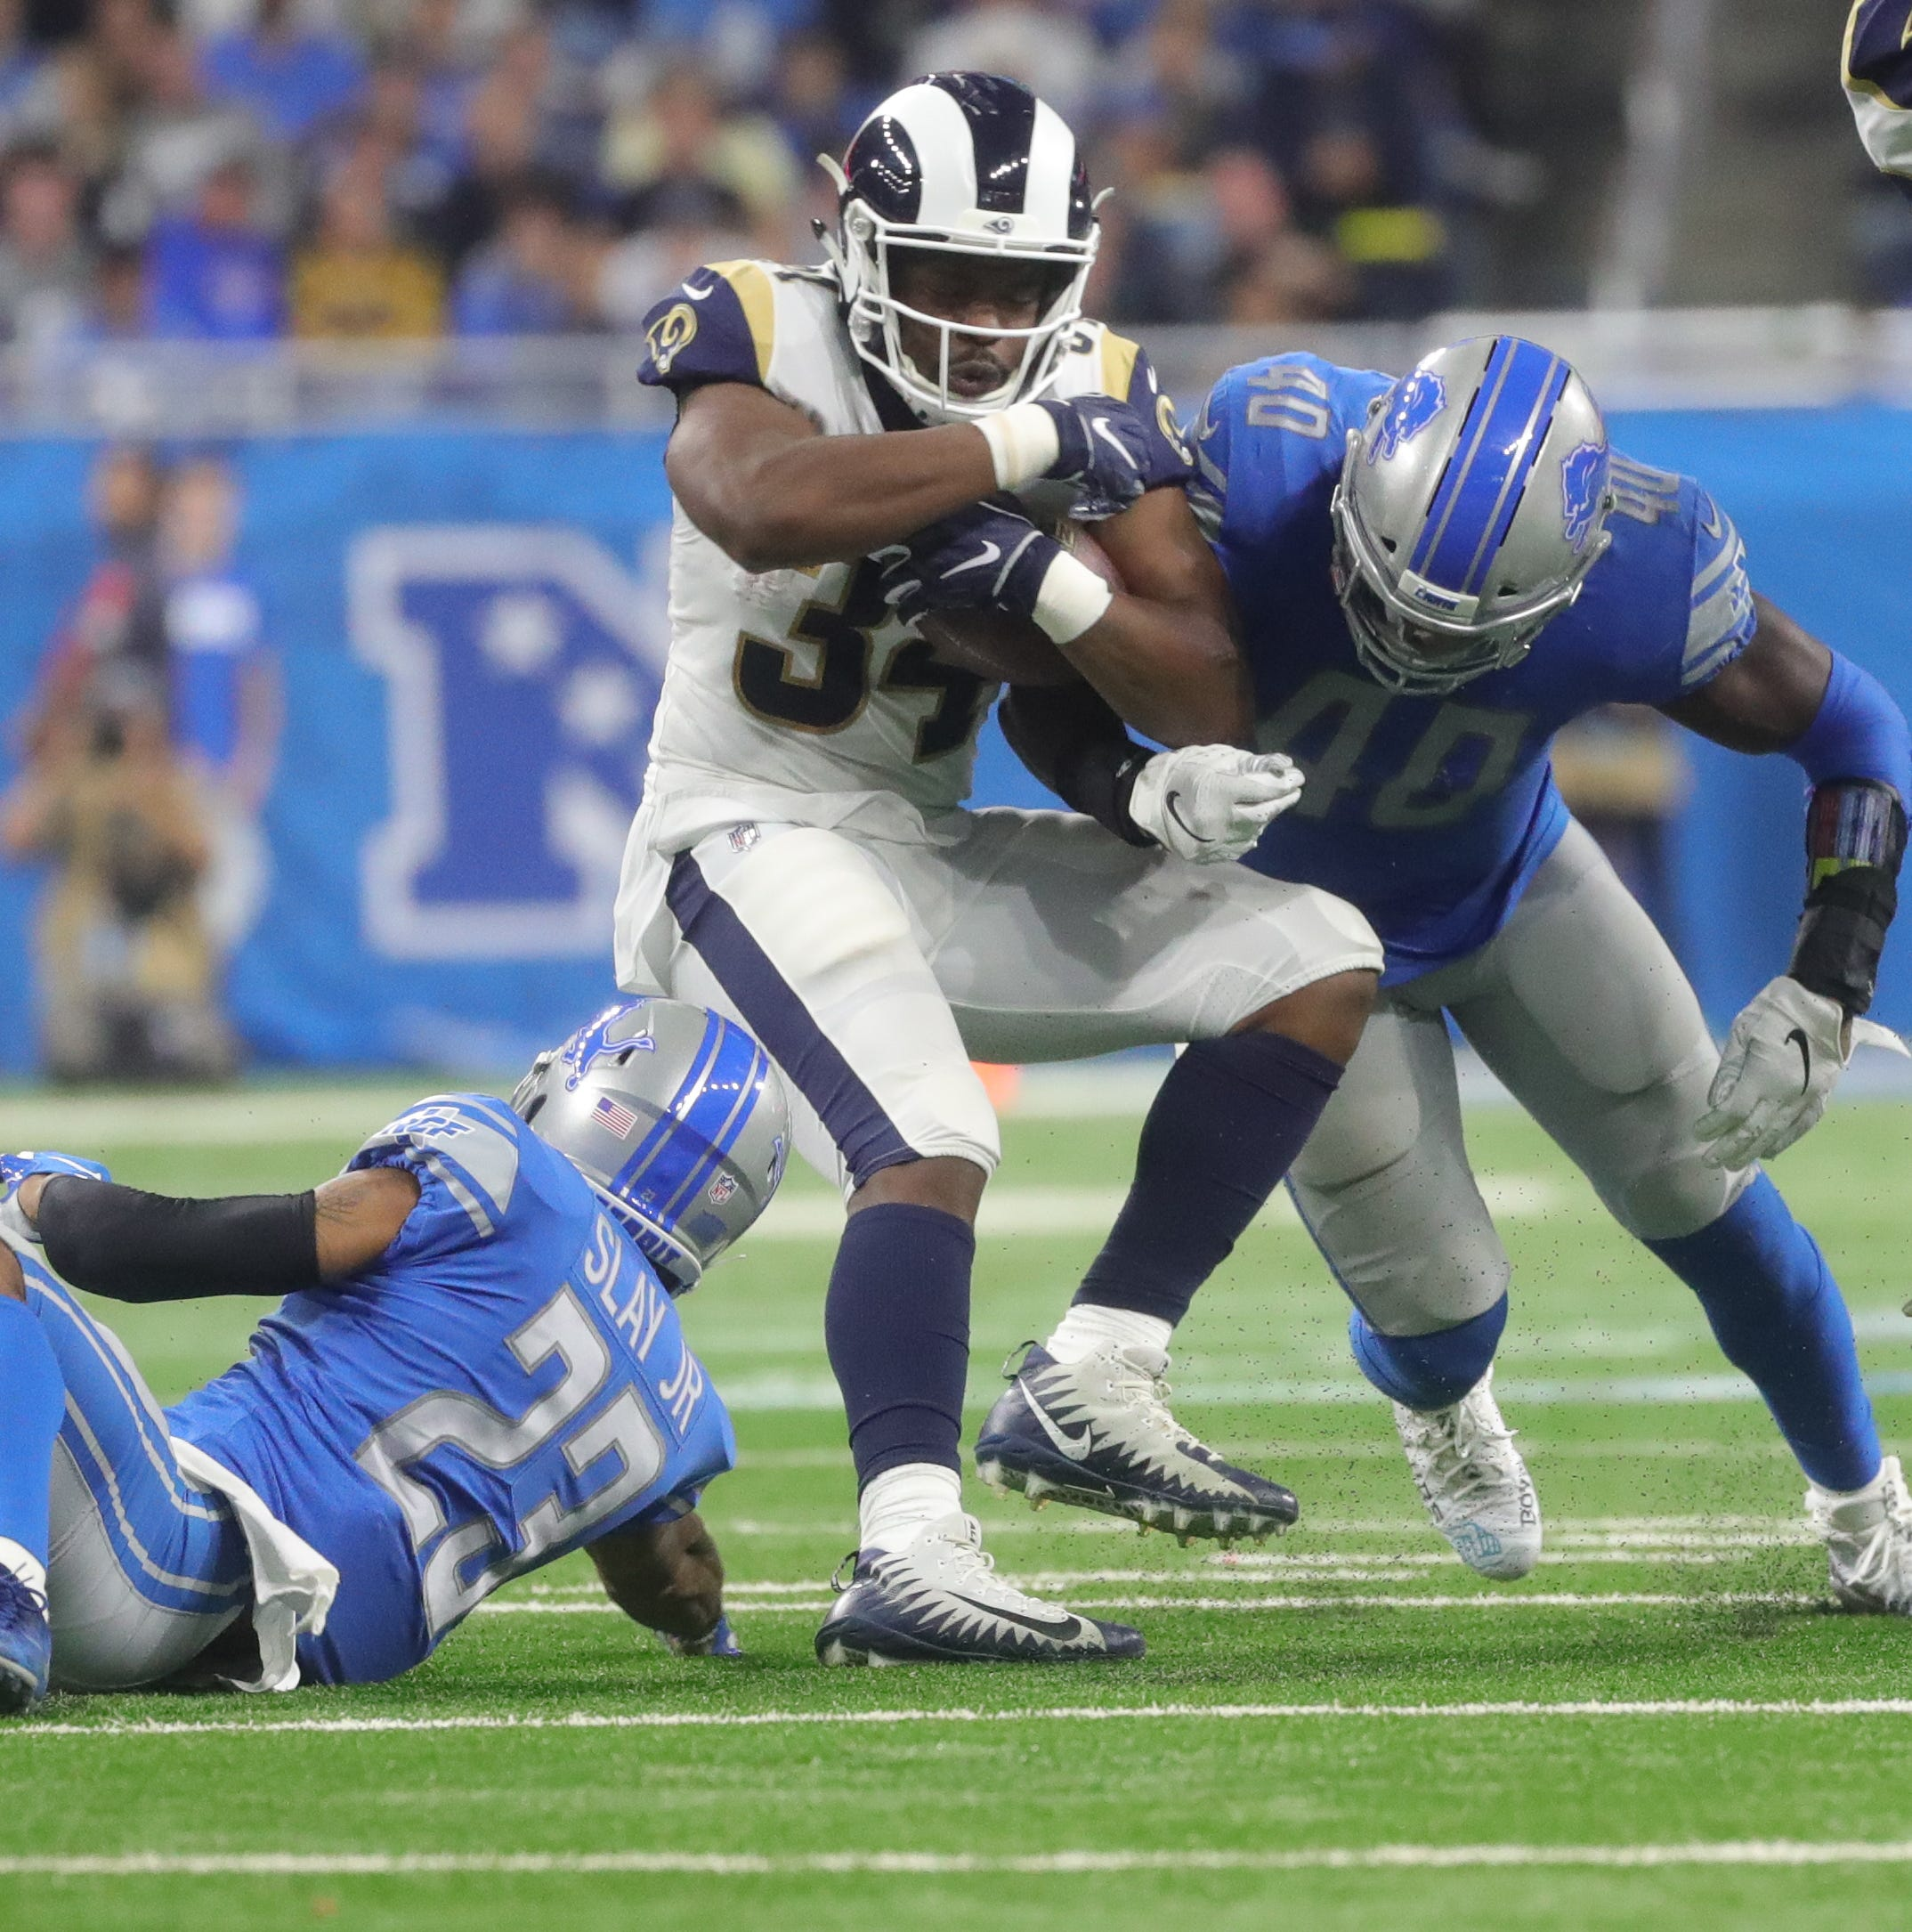 Lions cornerback Darius Slay, left, and linebacker Jarrad Davis tackle Rams running back Malcolm Brown during the first half on Sunday, Dec. 2, 2018, at Ford Field.